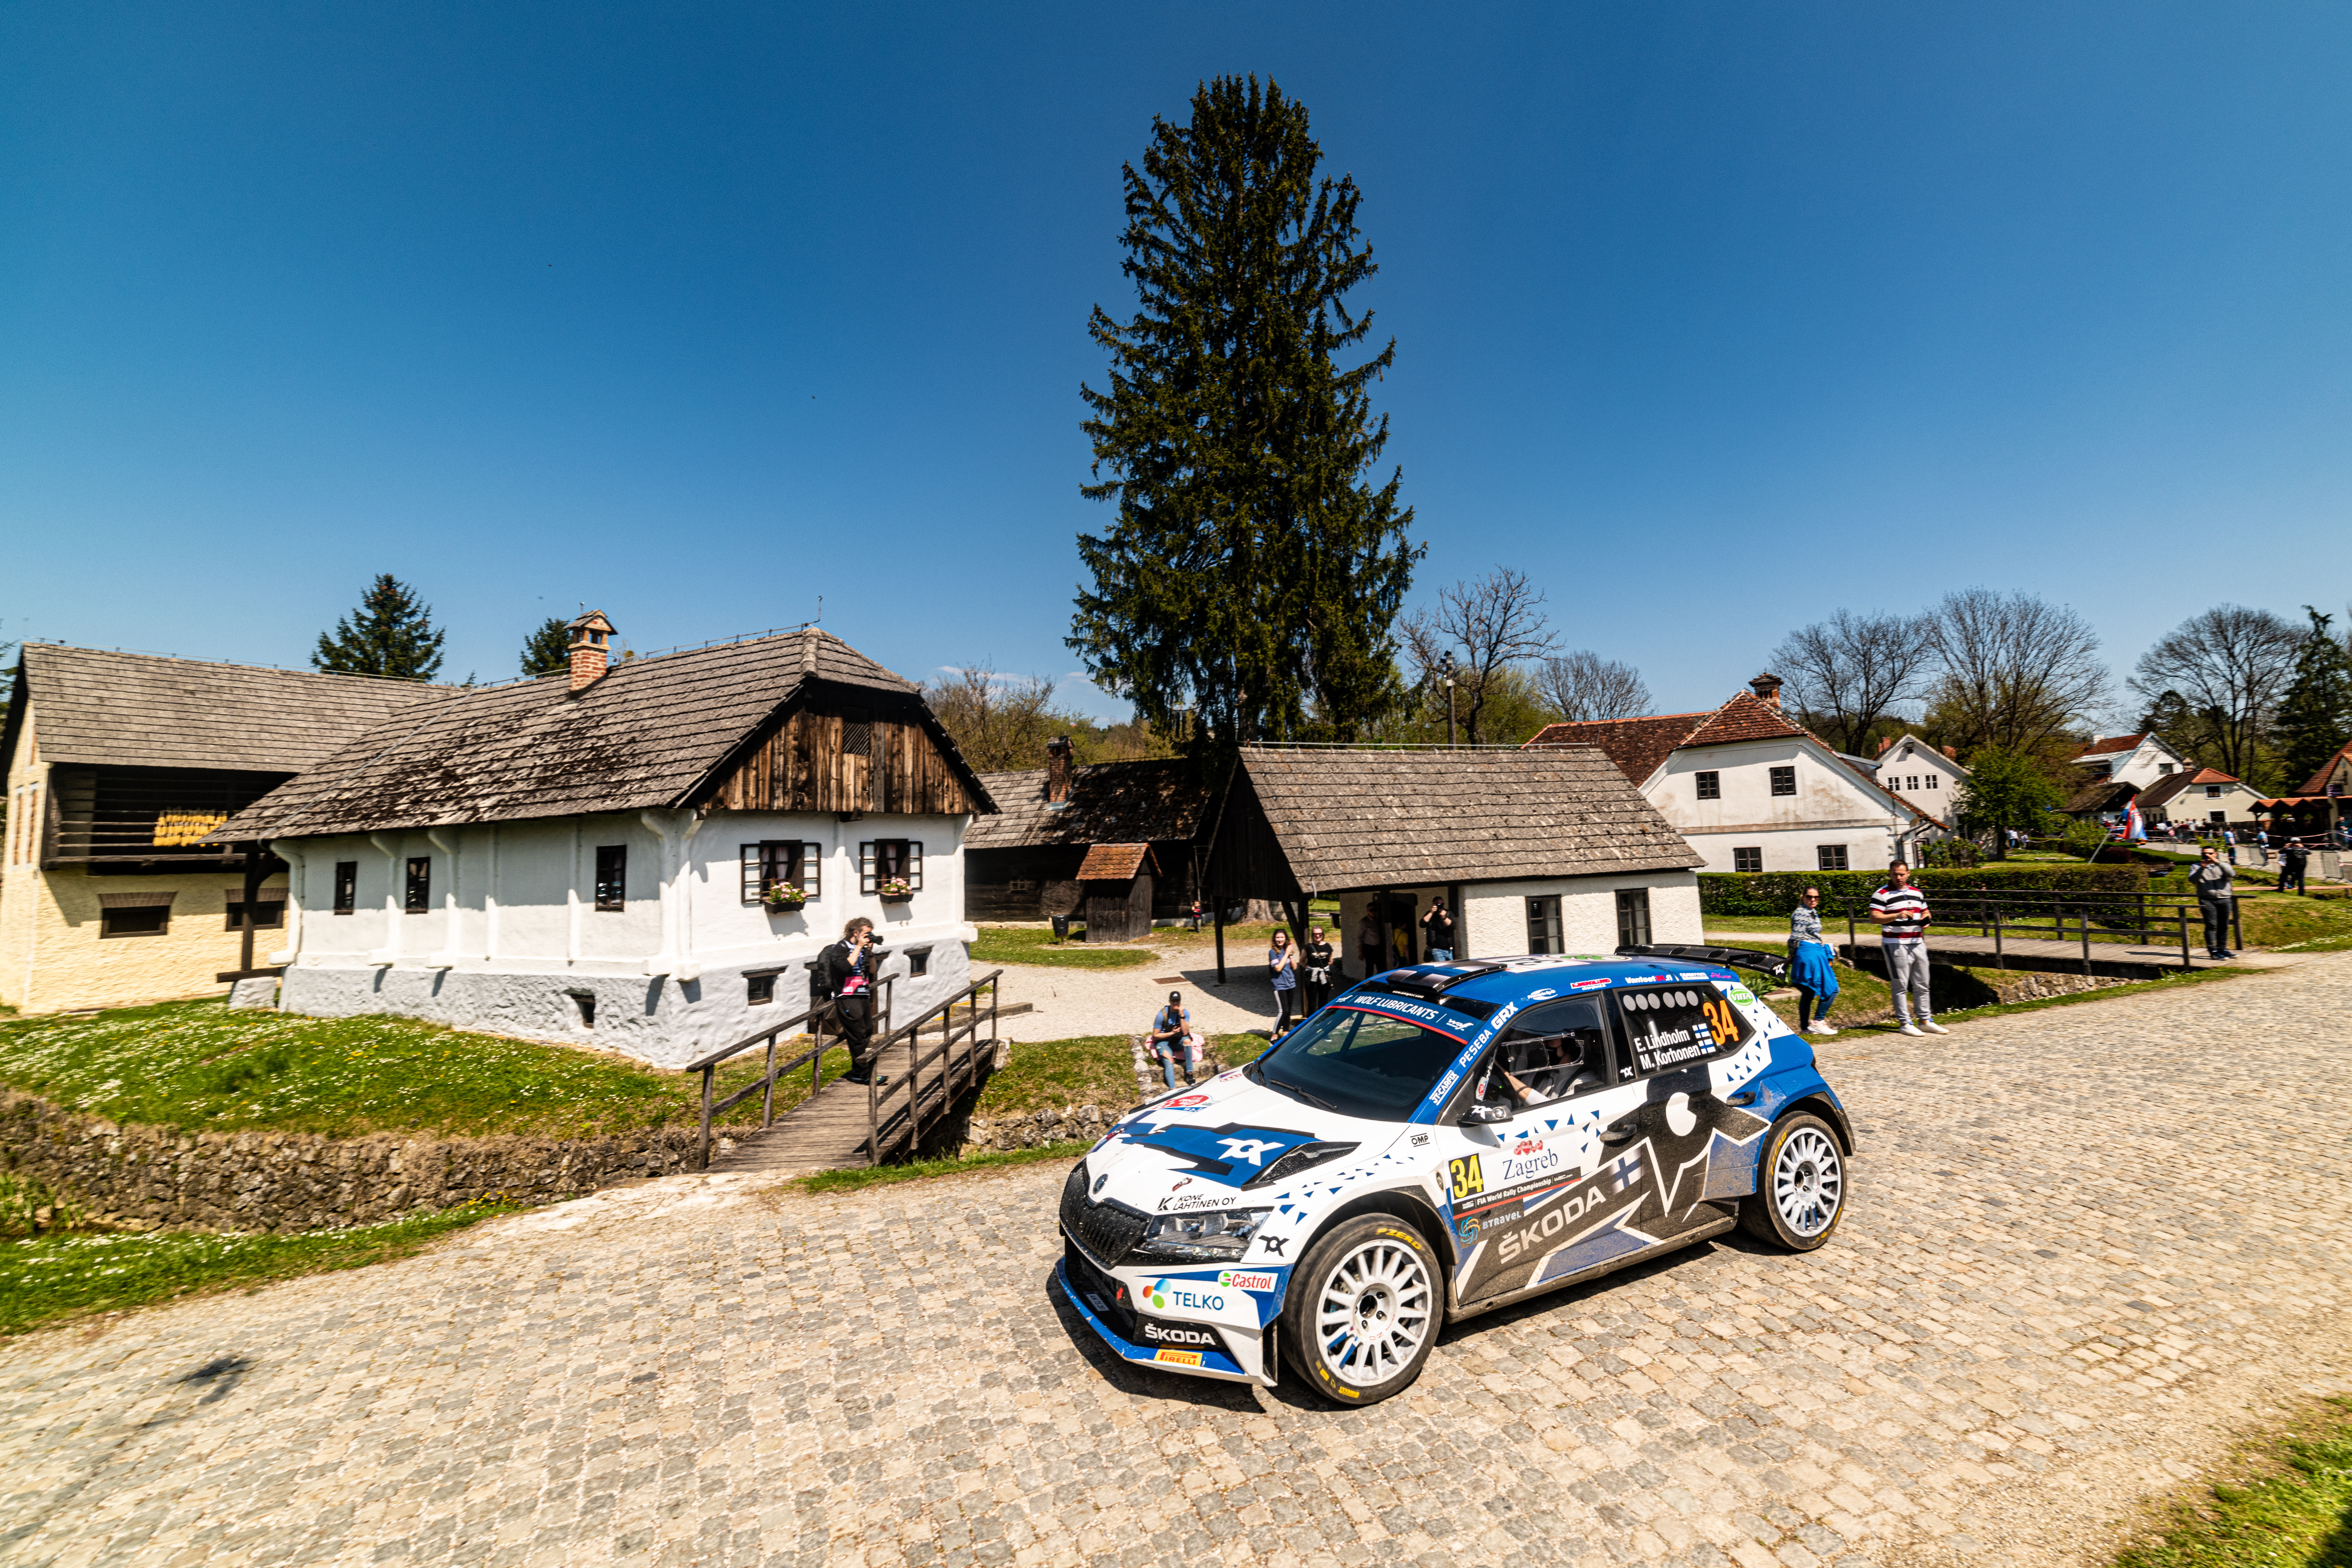 Rally Croatia: SKODA crews score 1-2 in WRC3, Andreas Mikkelsen defends WRC2 overall lead - Image 1